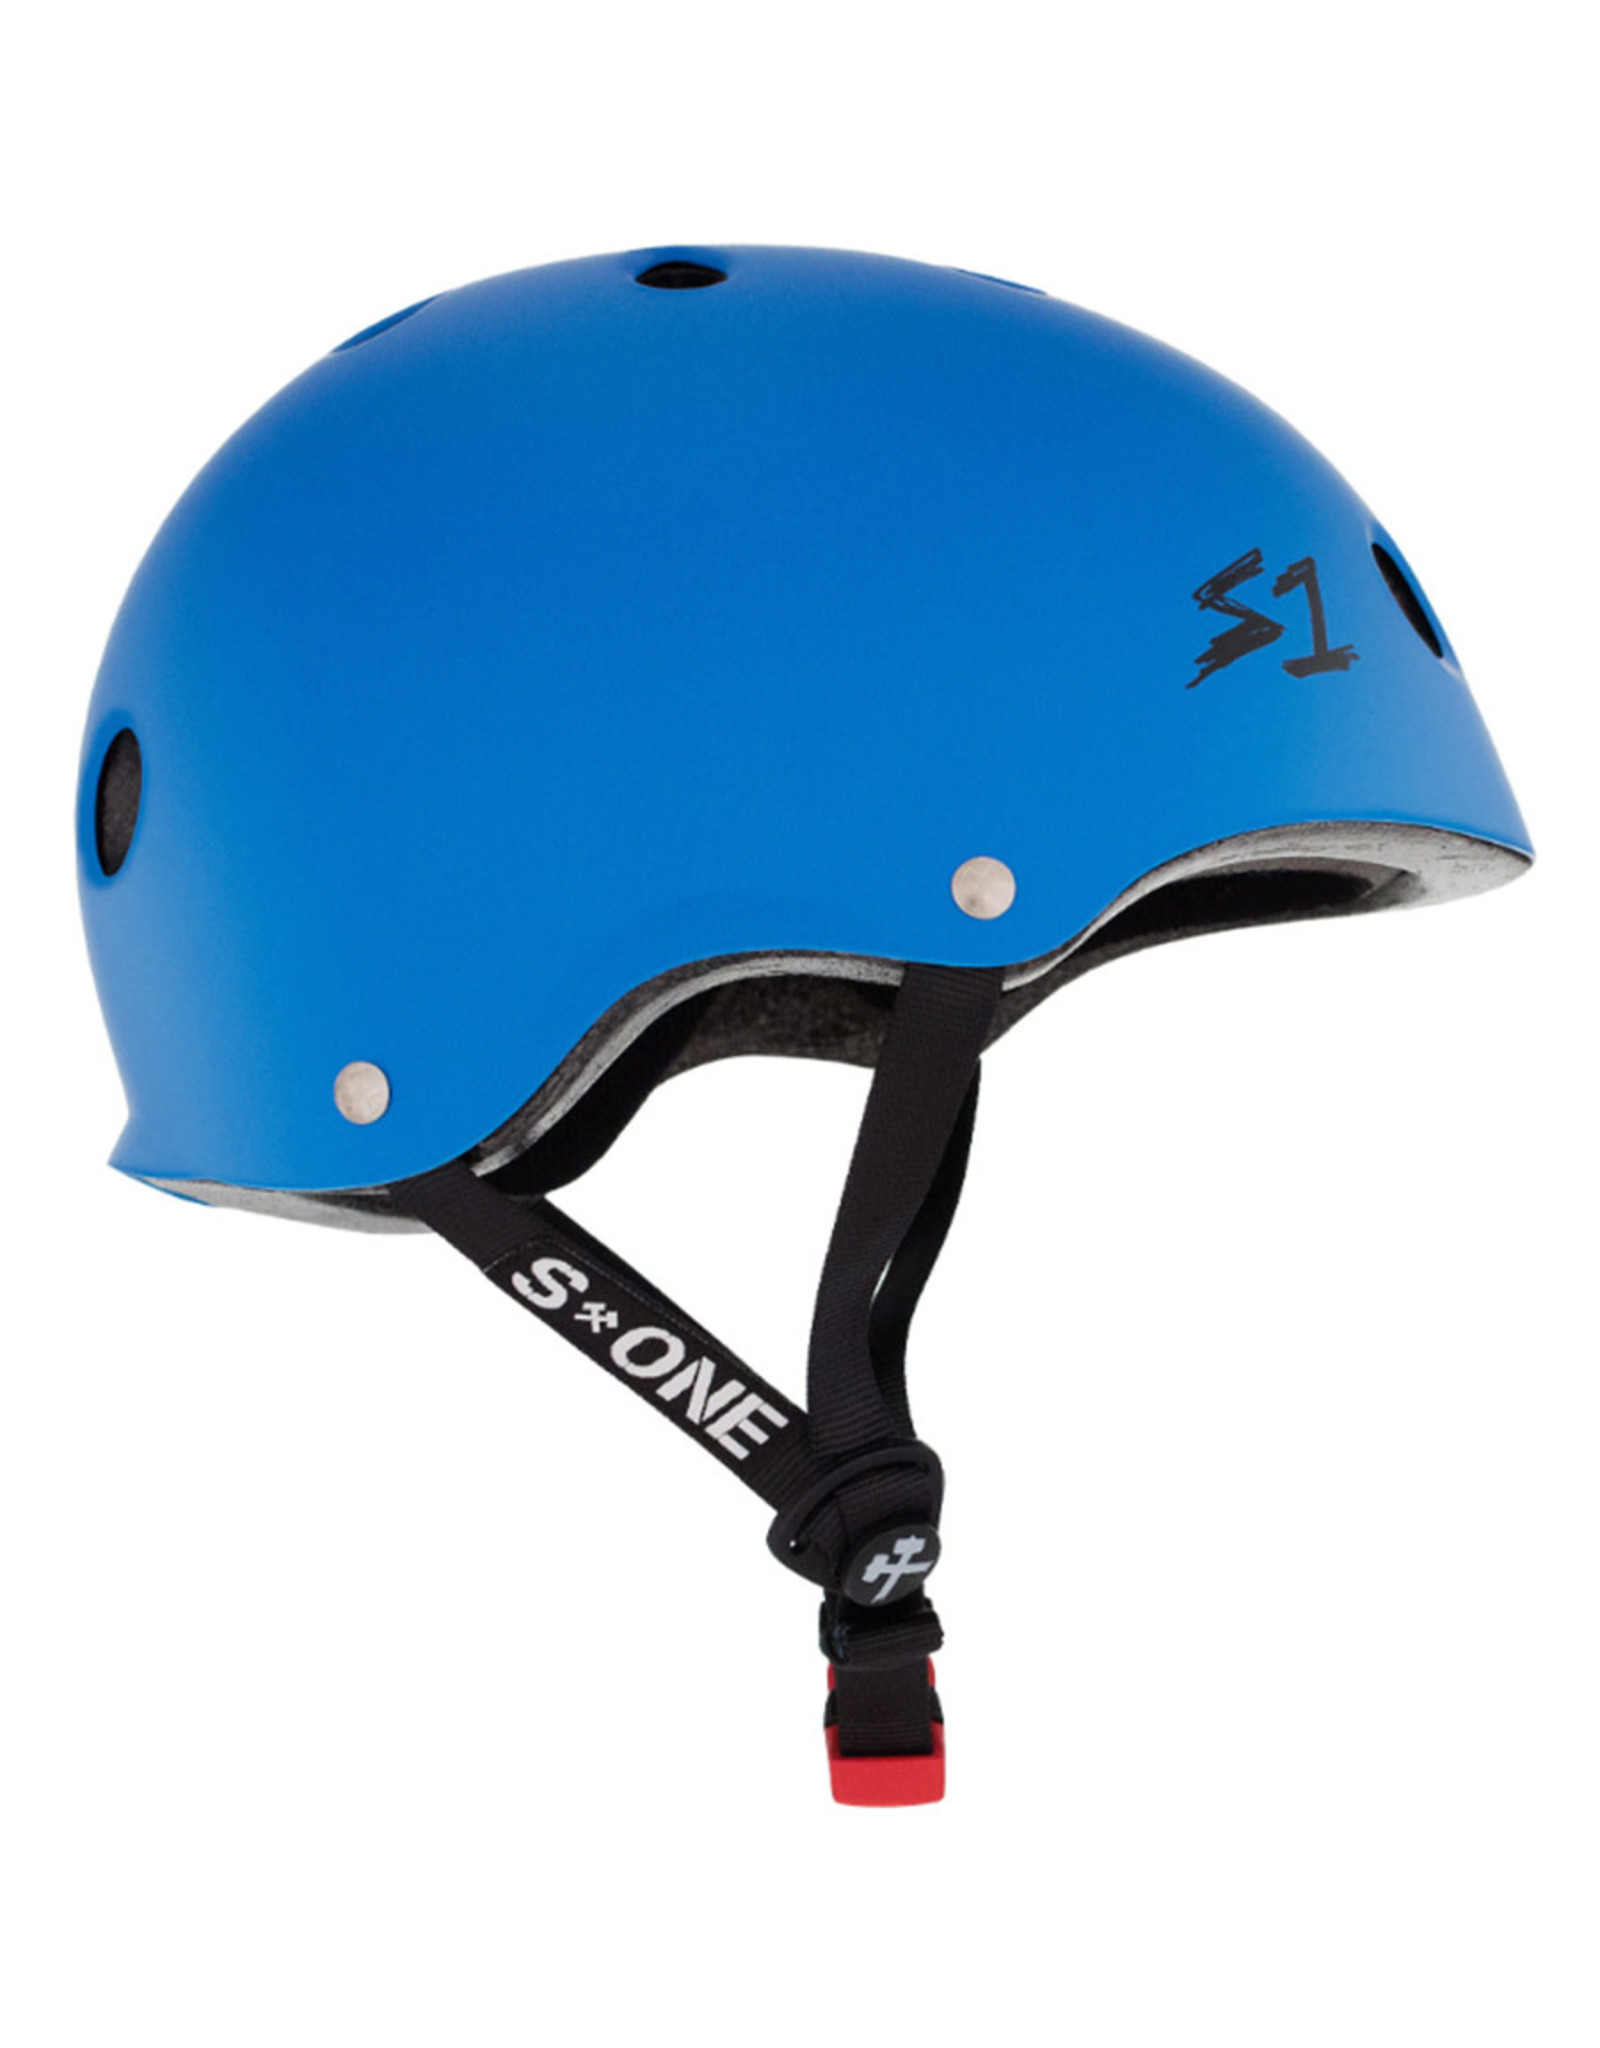 S-One S-One Helmet The Mini (Cyan Matte/Black Straps)